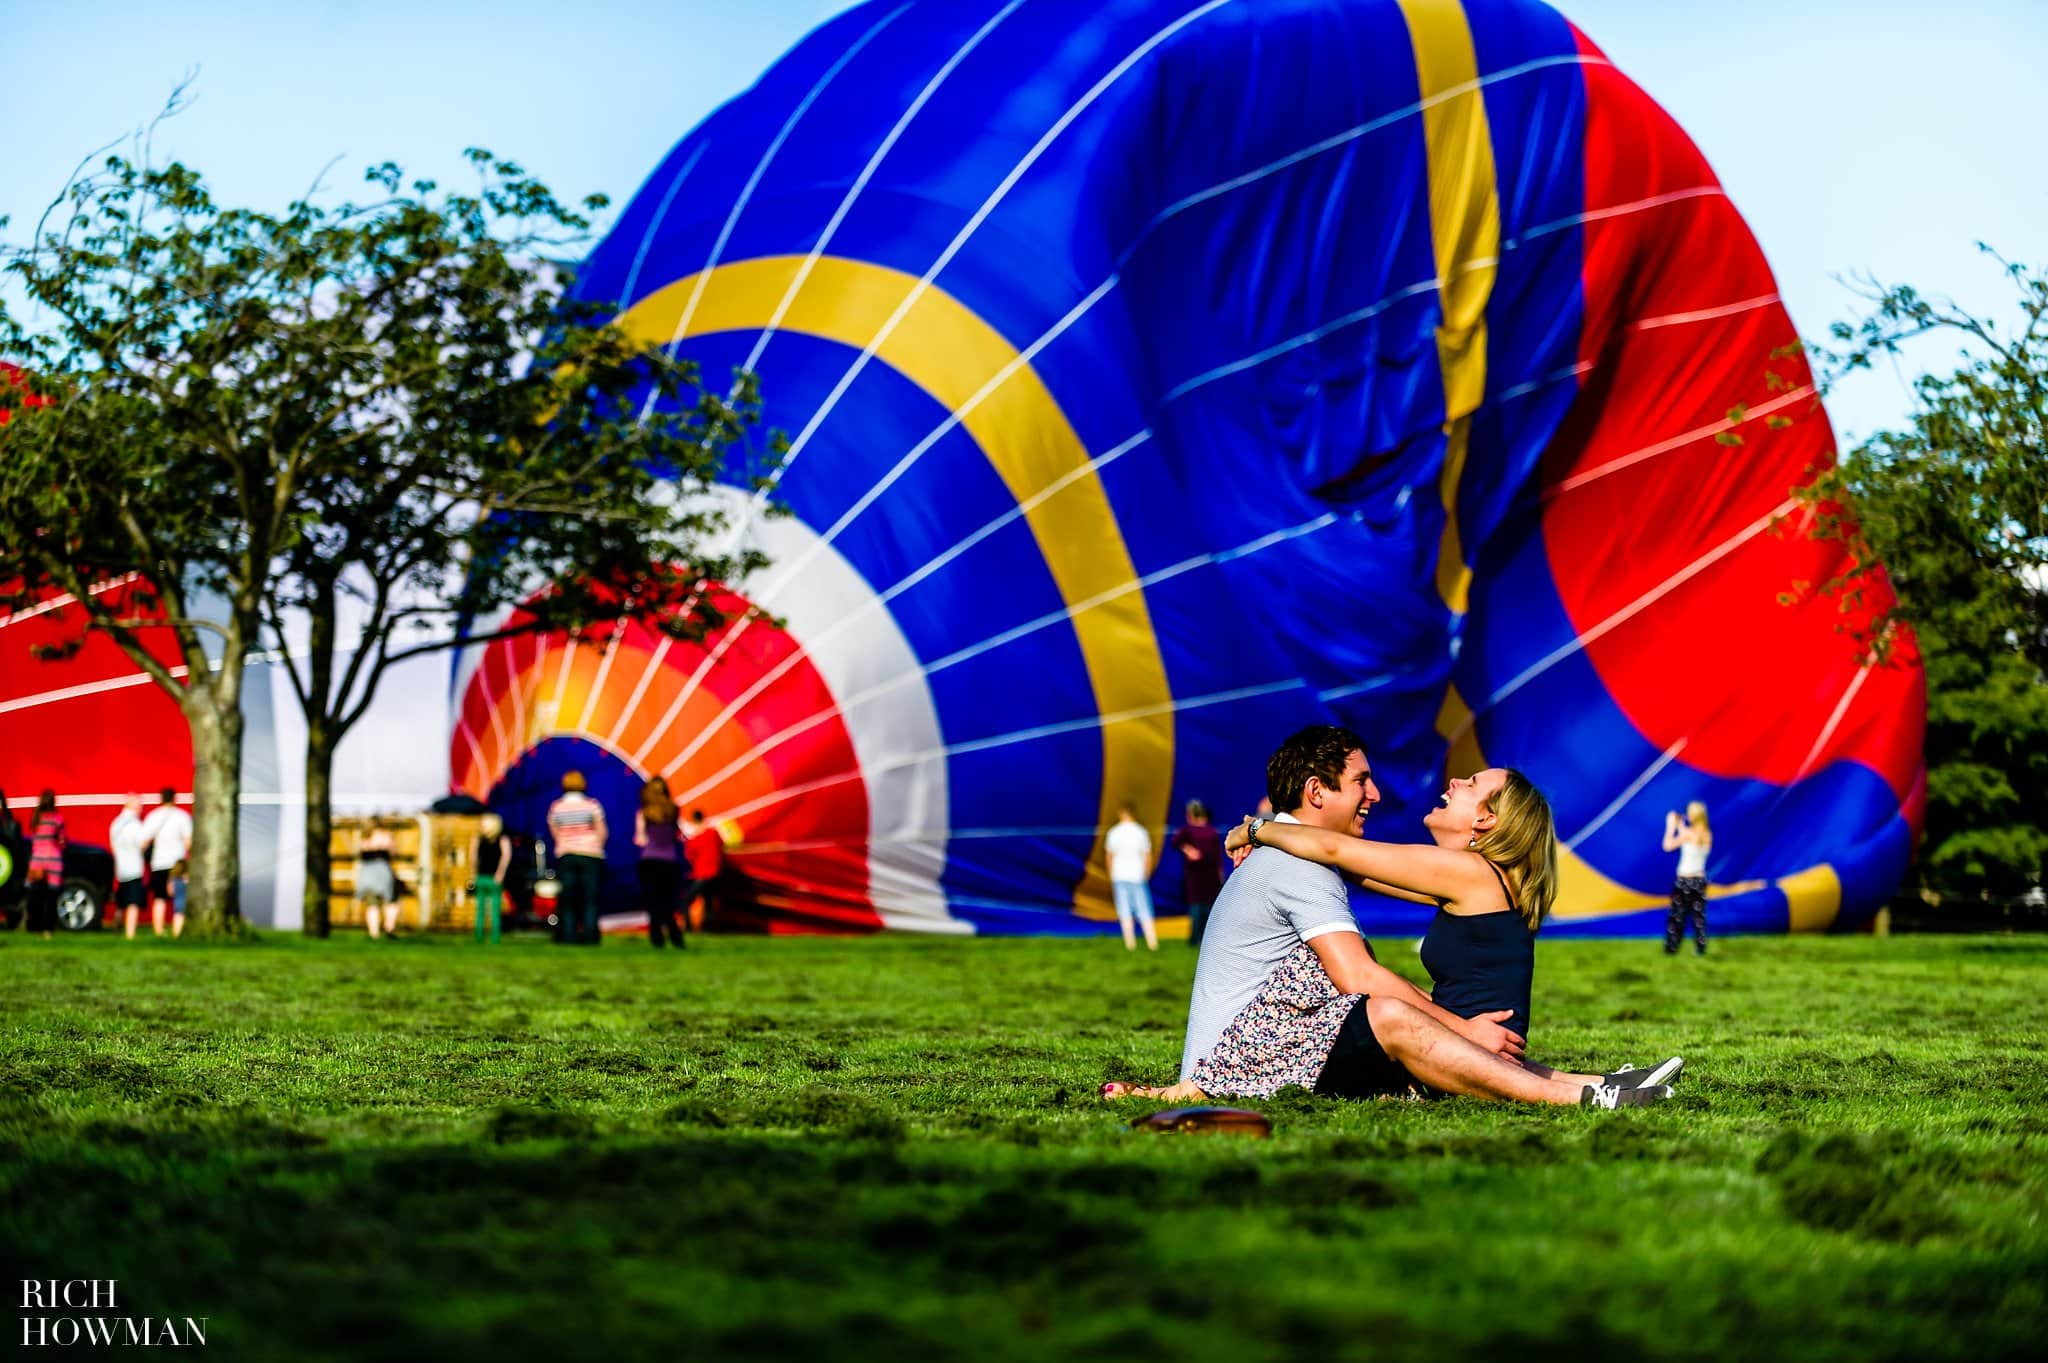 Hot air balloons take off in Royal Victoria Park in Bath whilst an engaged couple sit on the ground laughing during their engagement photo shoot in Bath, Somerset